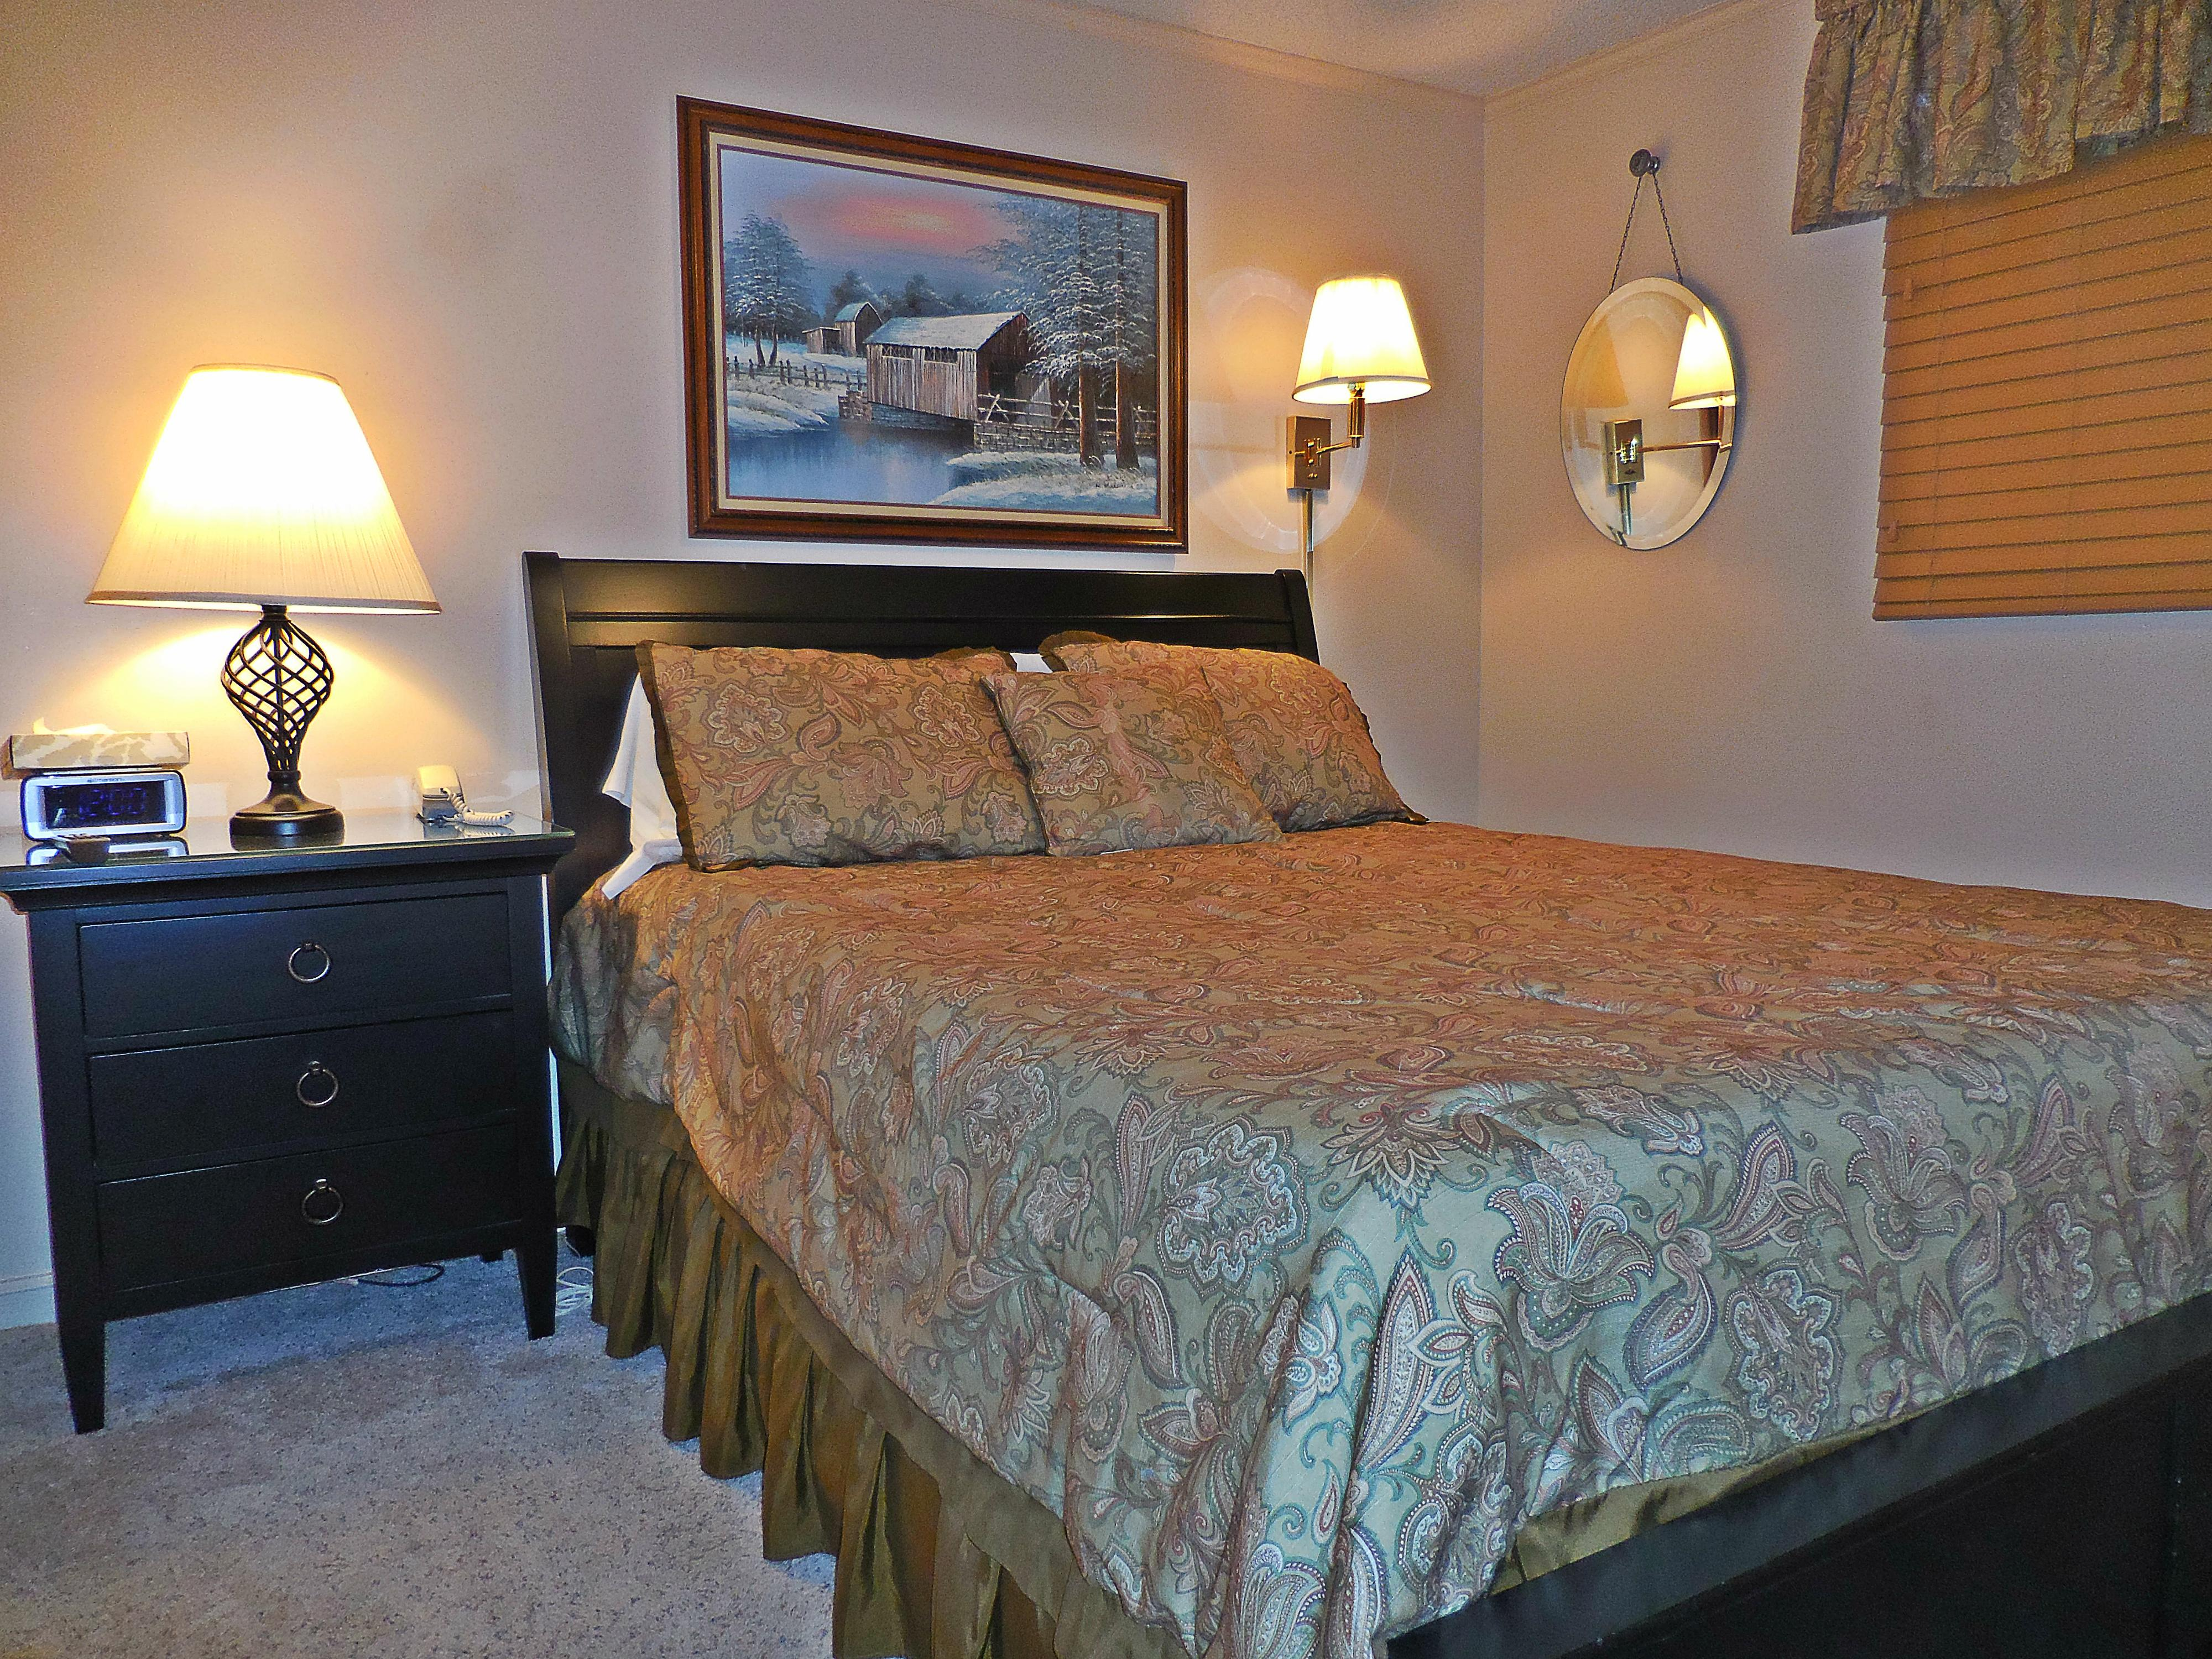 Queen-sized be in bedroom with flatscreen TV on wall